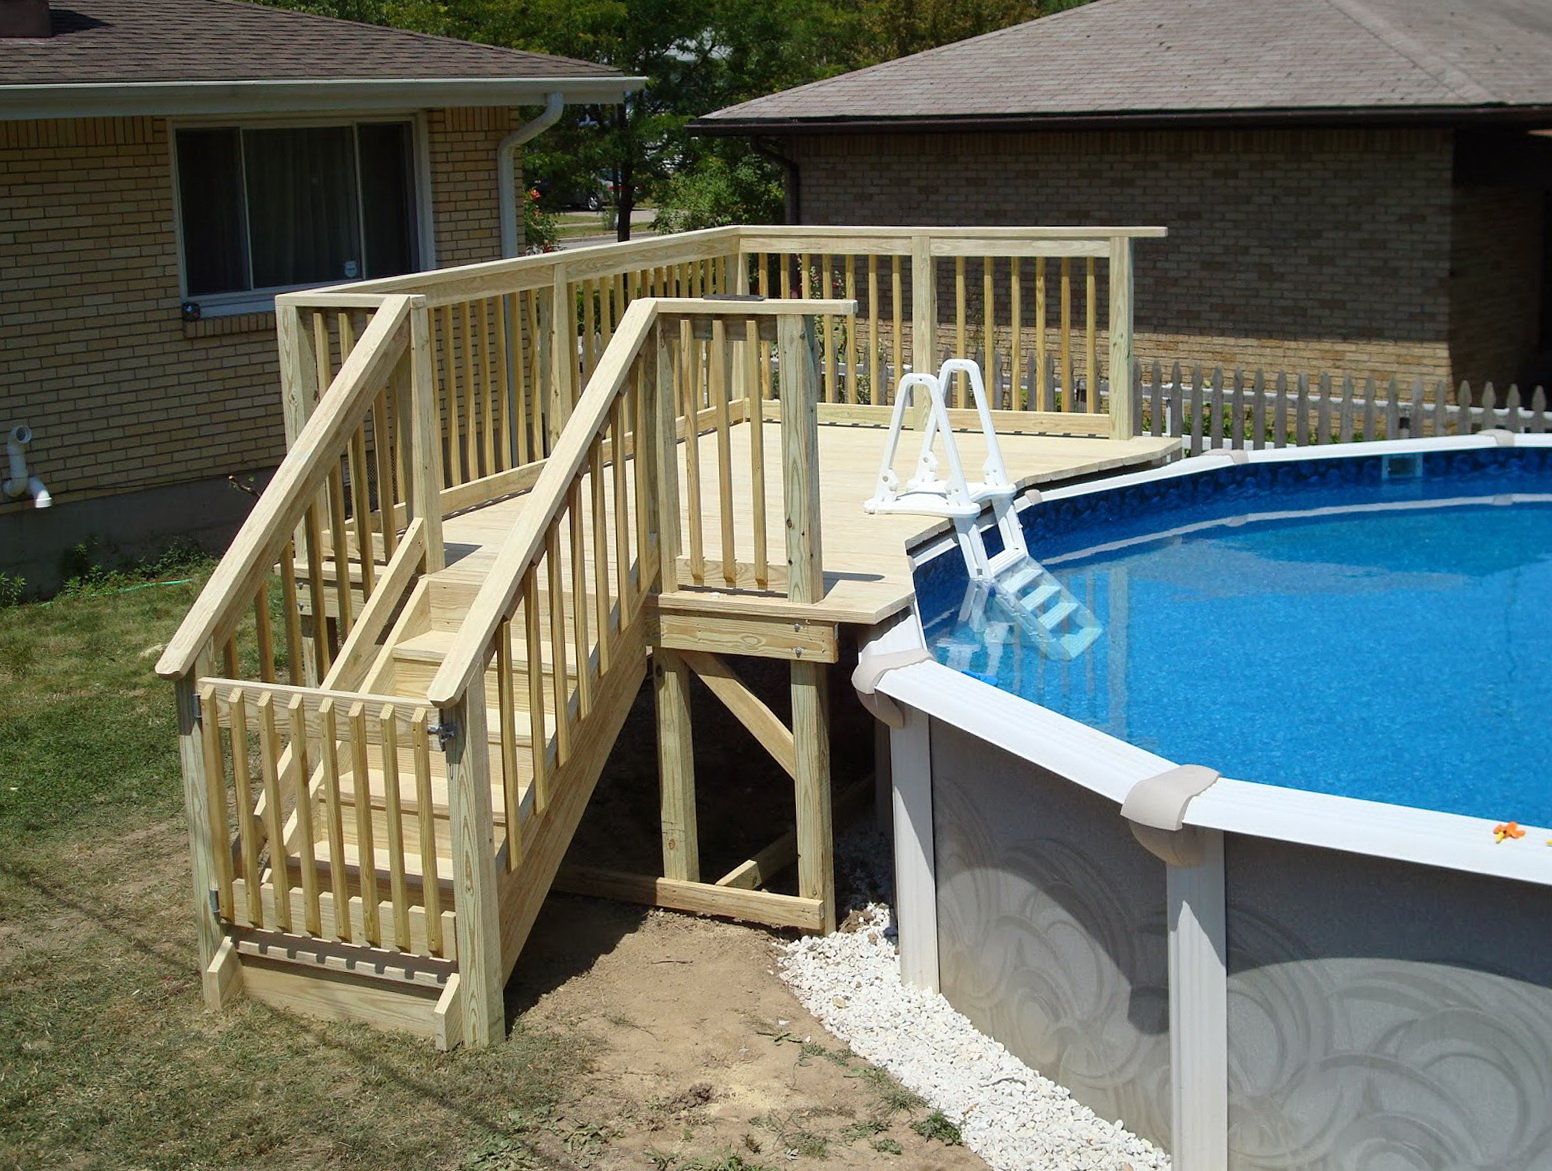 Small deck plans for above ground pools home design ideas for Small house deck designs